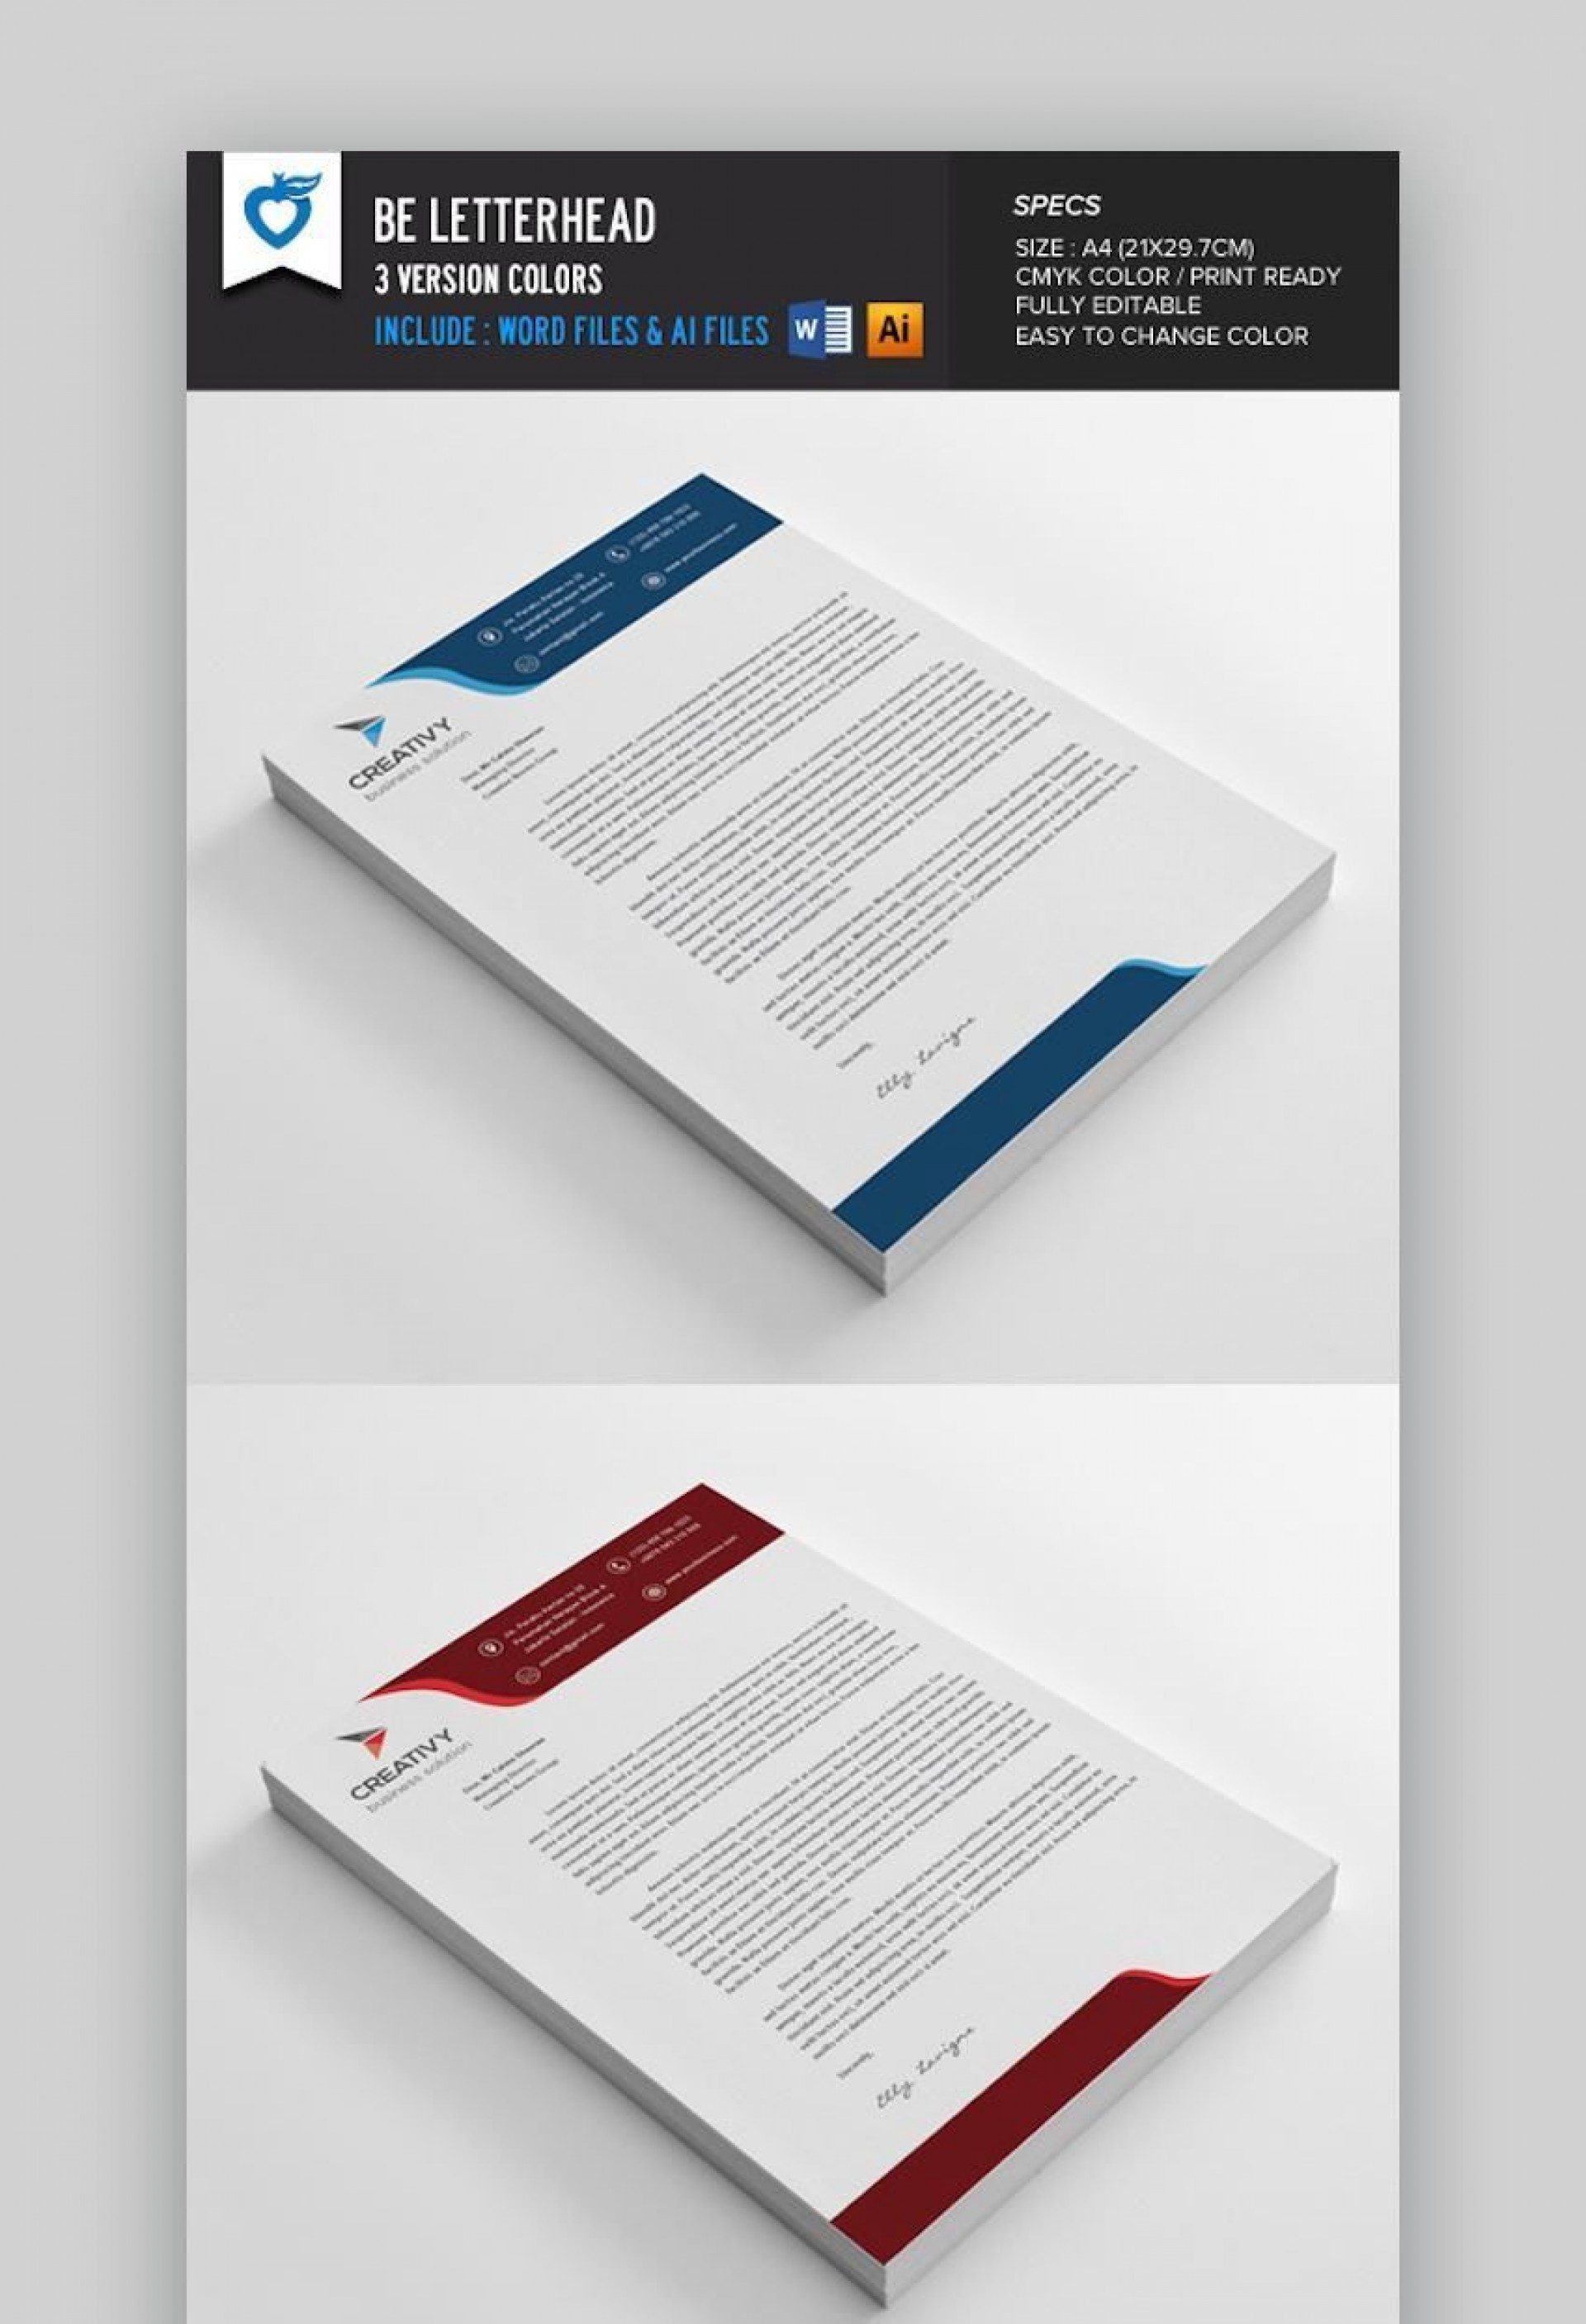 006 Fantastic Sample Letterhead Template Free Download Photo  Professional Design In Word Format1920